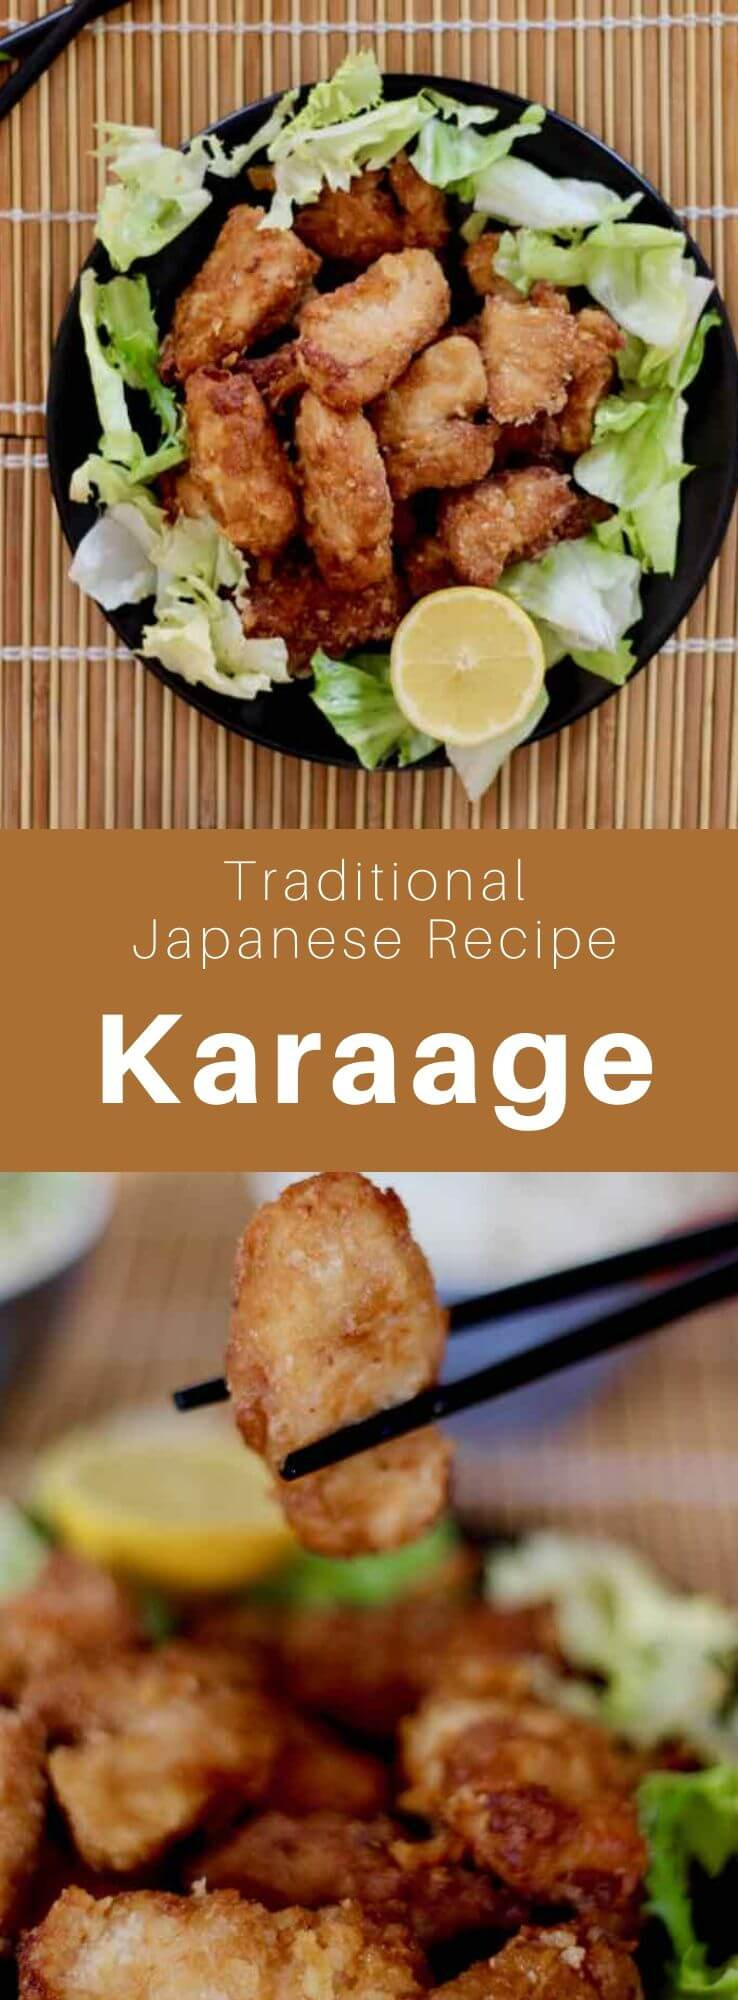 Karaage (唐揚げ) is a Japanese cooking technique in which the ingredients, mainly meat or fish, are marinated and then fried in oil. #Japan #Japanese #JapaneseFood #JapaneseCuisine #JapaneseRecipe #AsianCuisine #AsianFood #AsianCuisine #WorldCuisine #196flavors